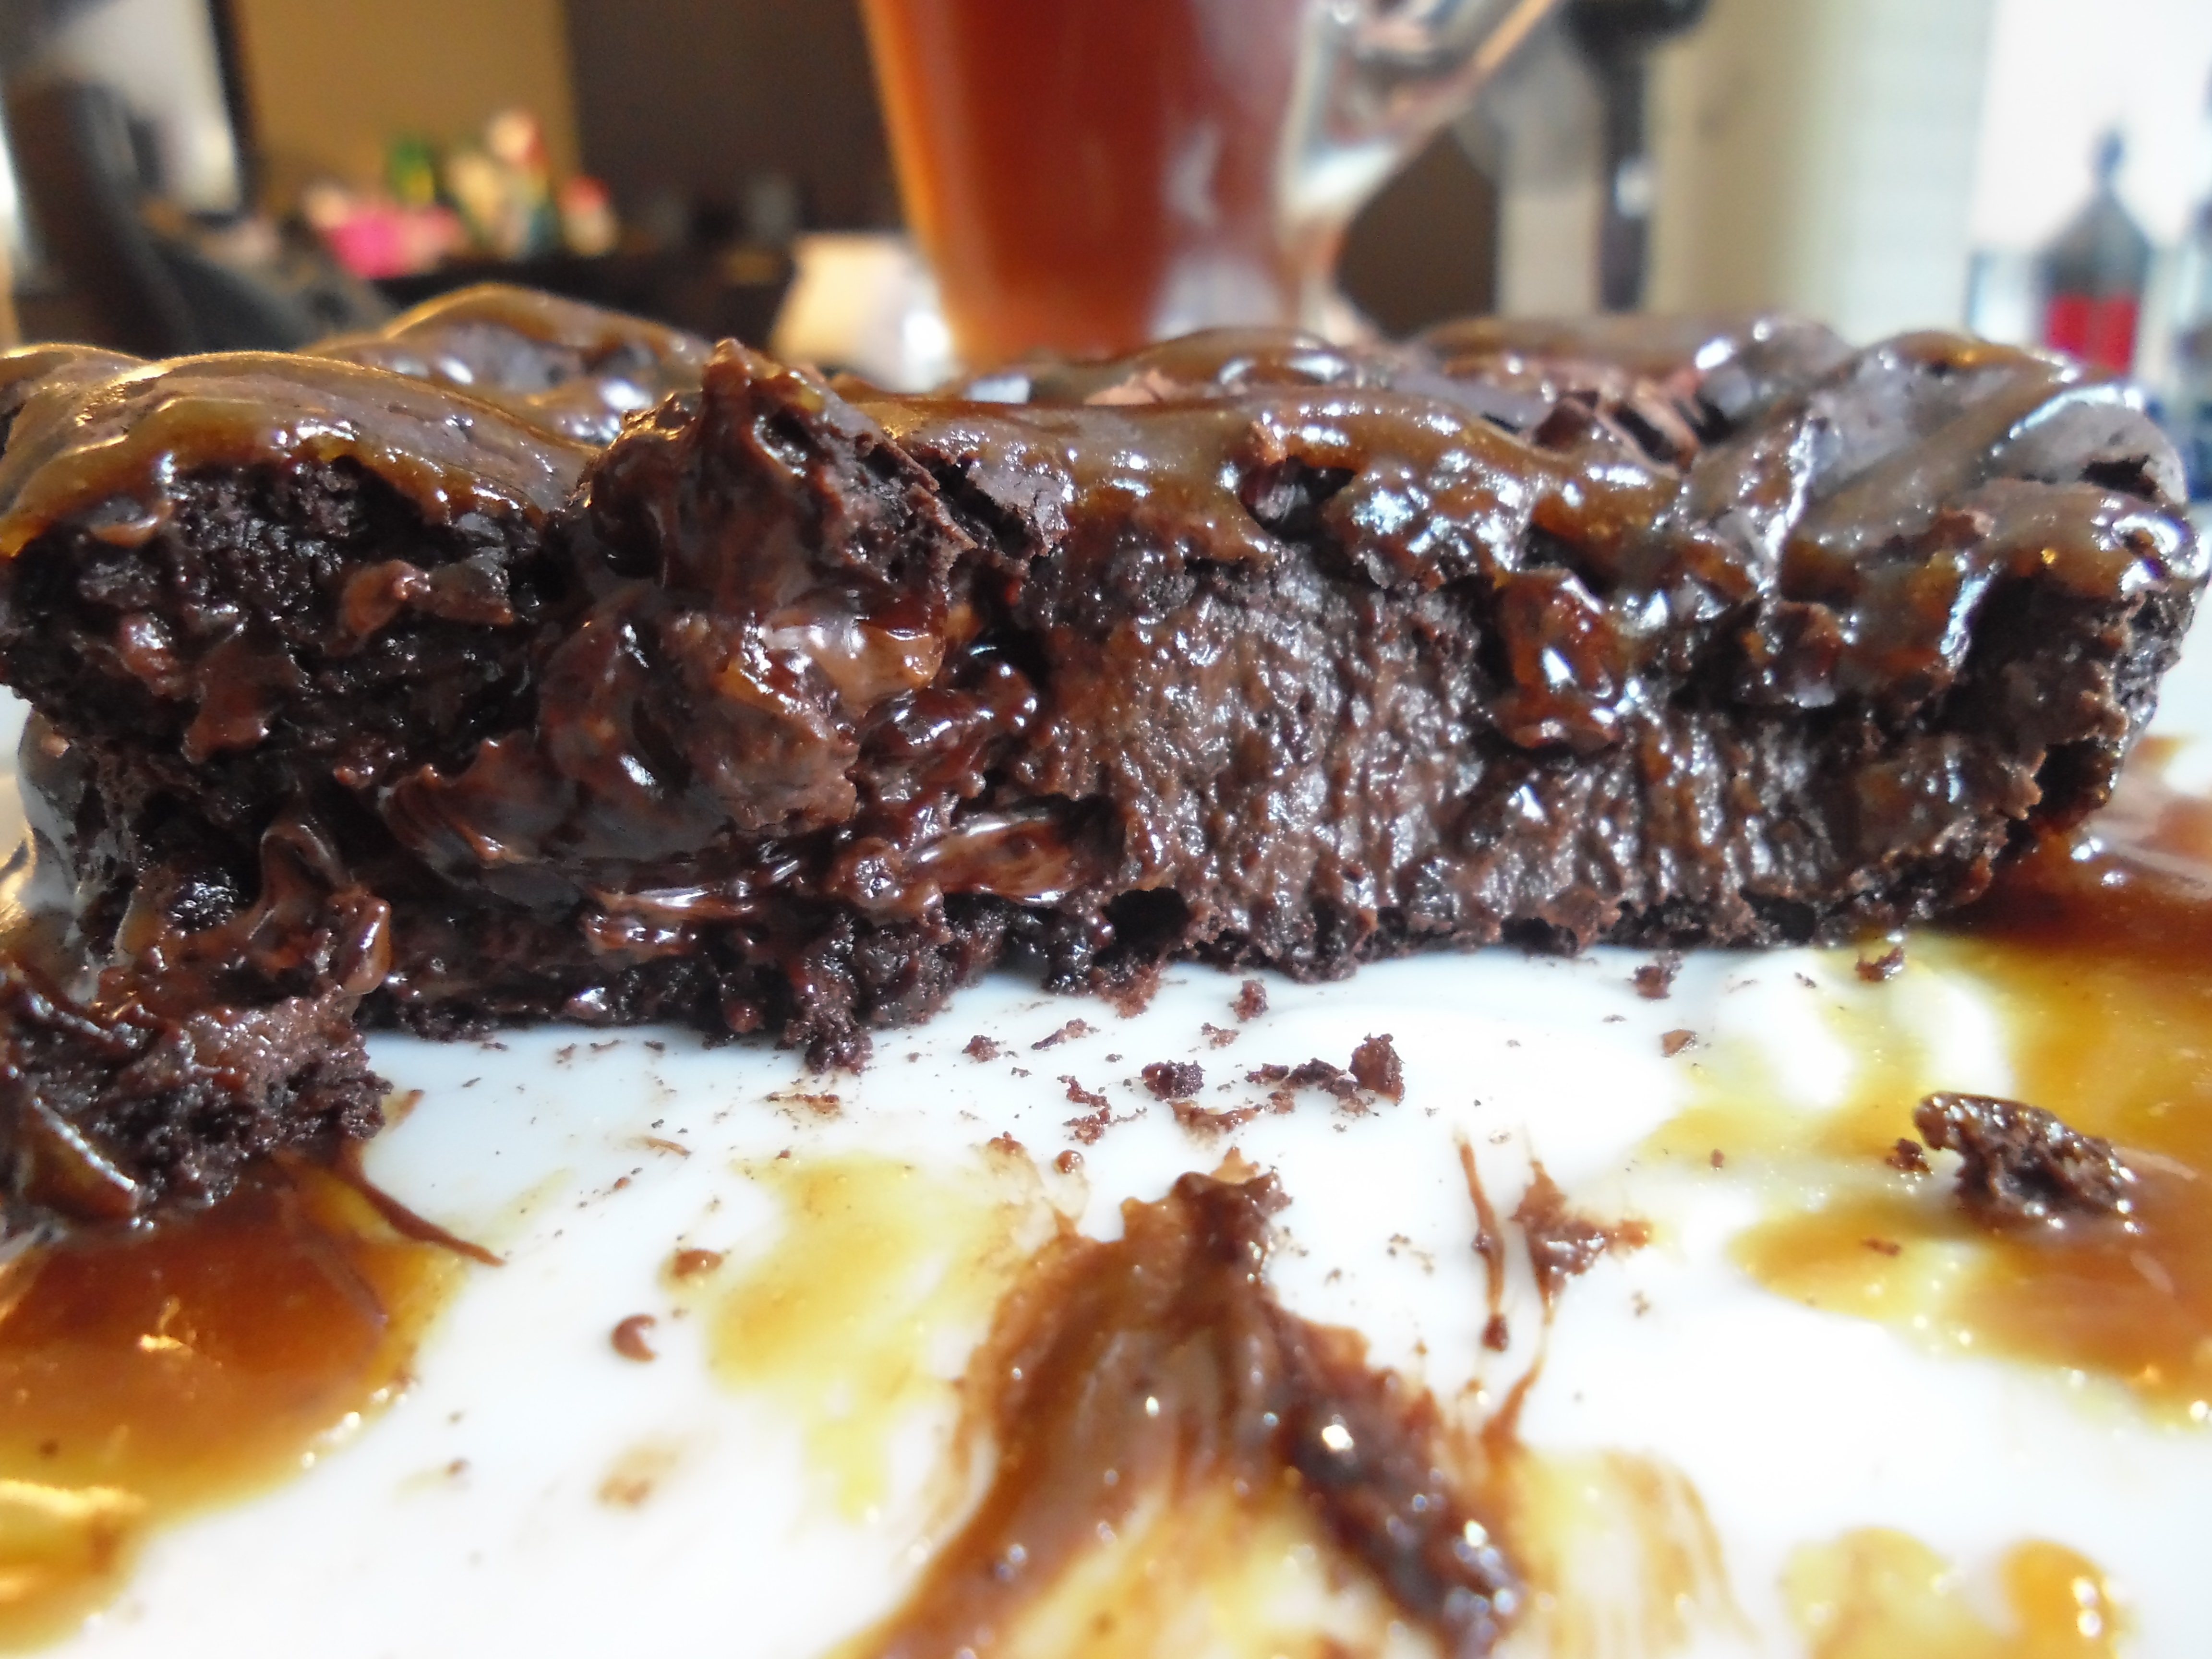 Chocolate pudding cake for one